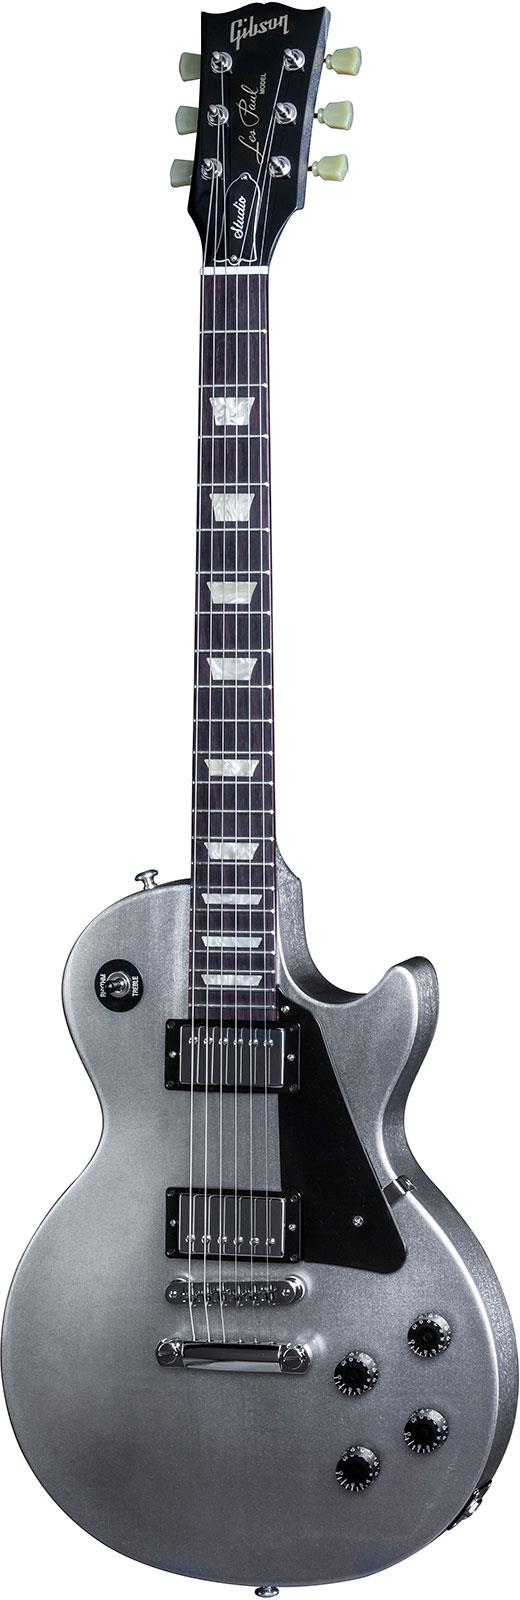 gibson les paul studio 2016 t electric guitar – silver pearl